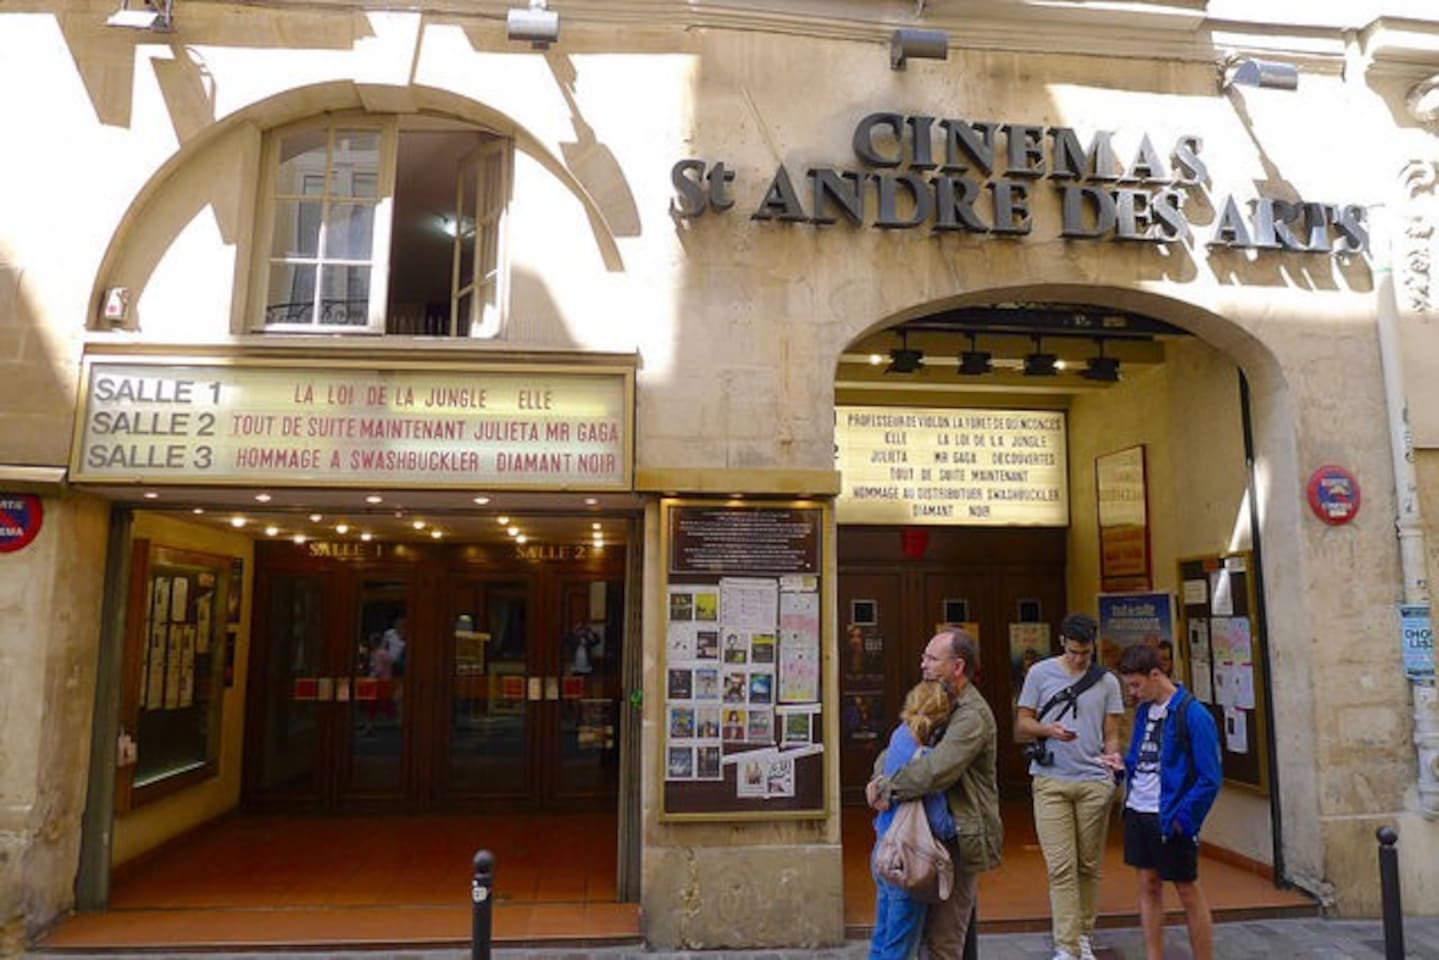 If you're looking for culture, this is where you'll find two of the most revered arthouse cinemas in town – the Christine 21& the St André des Arts (three screens)